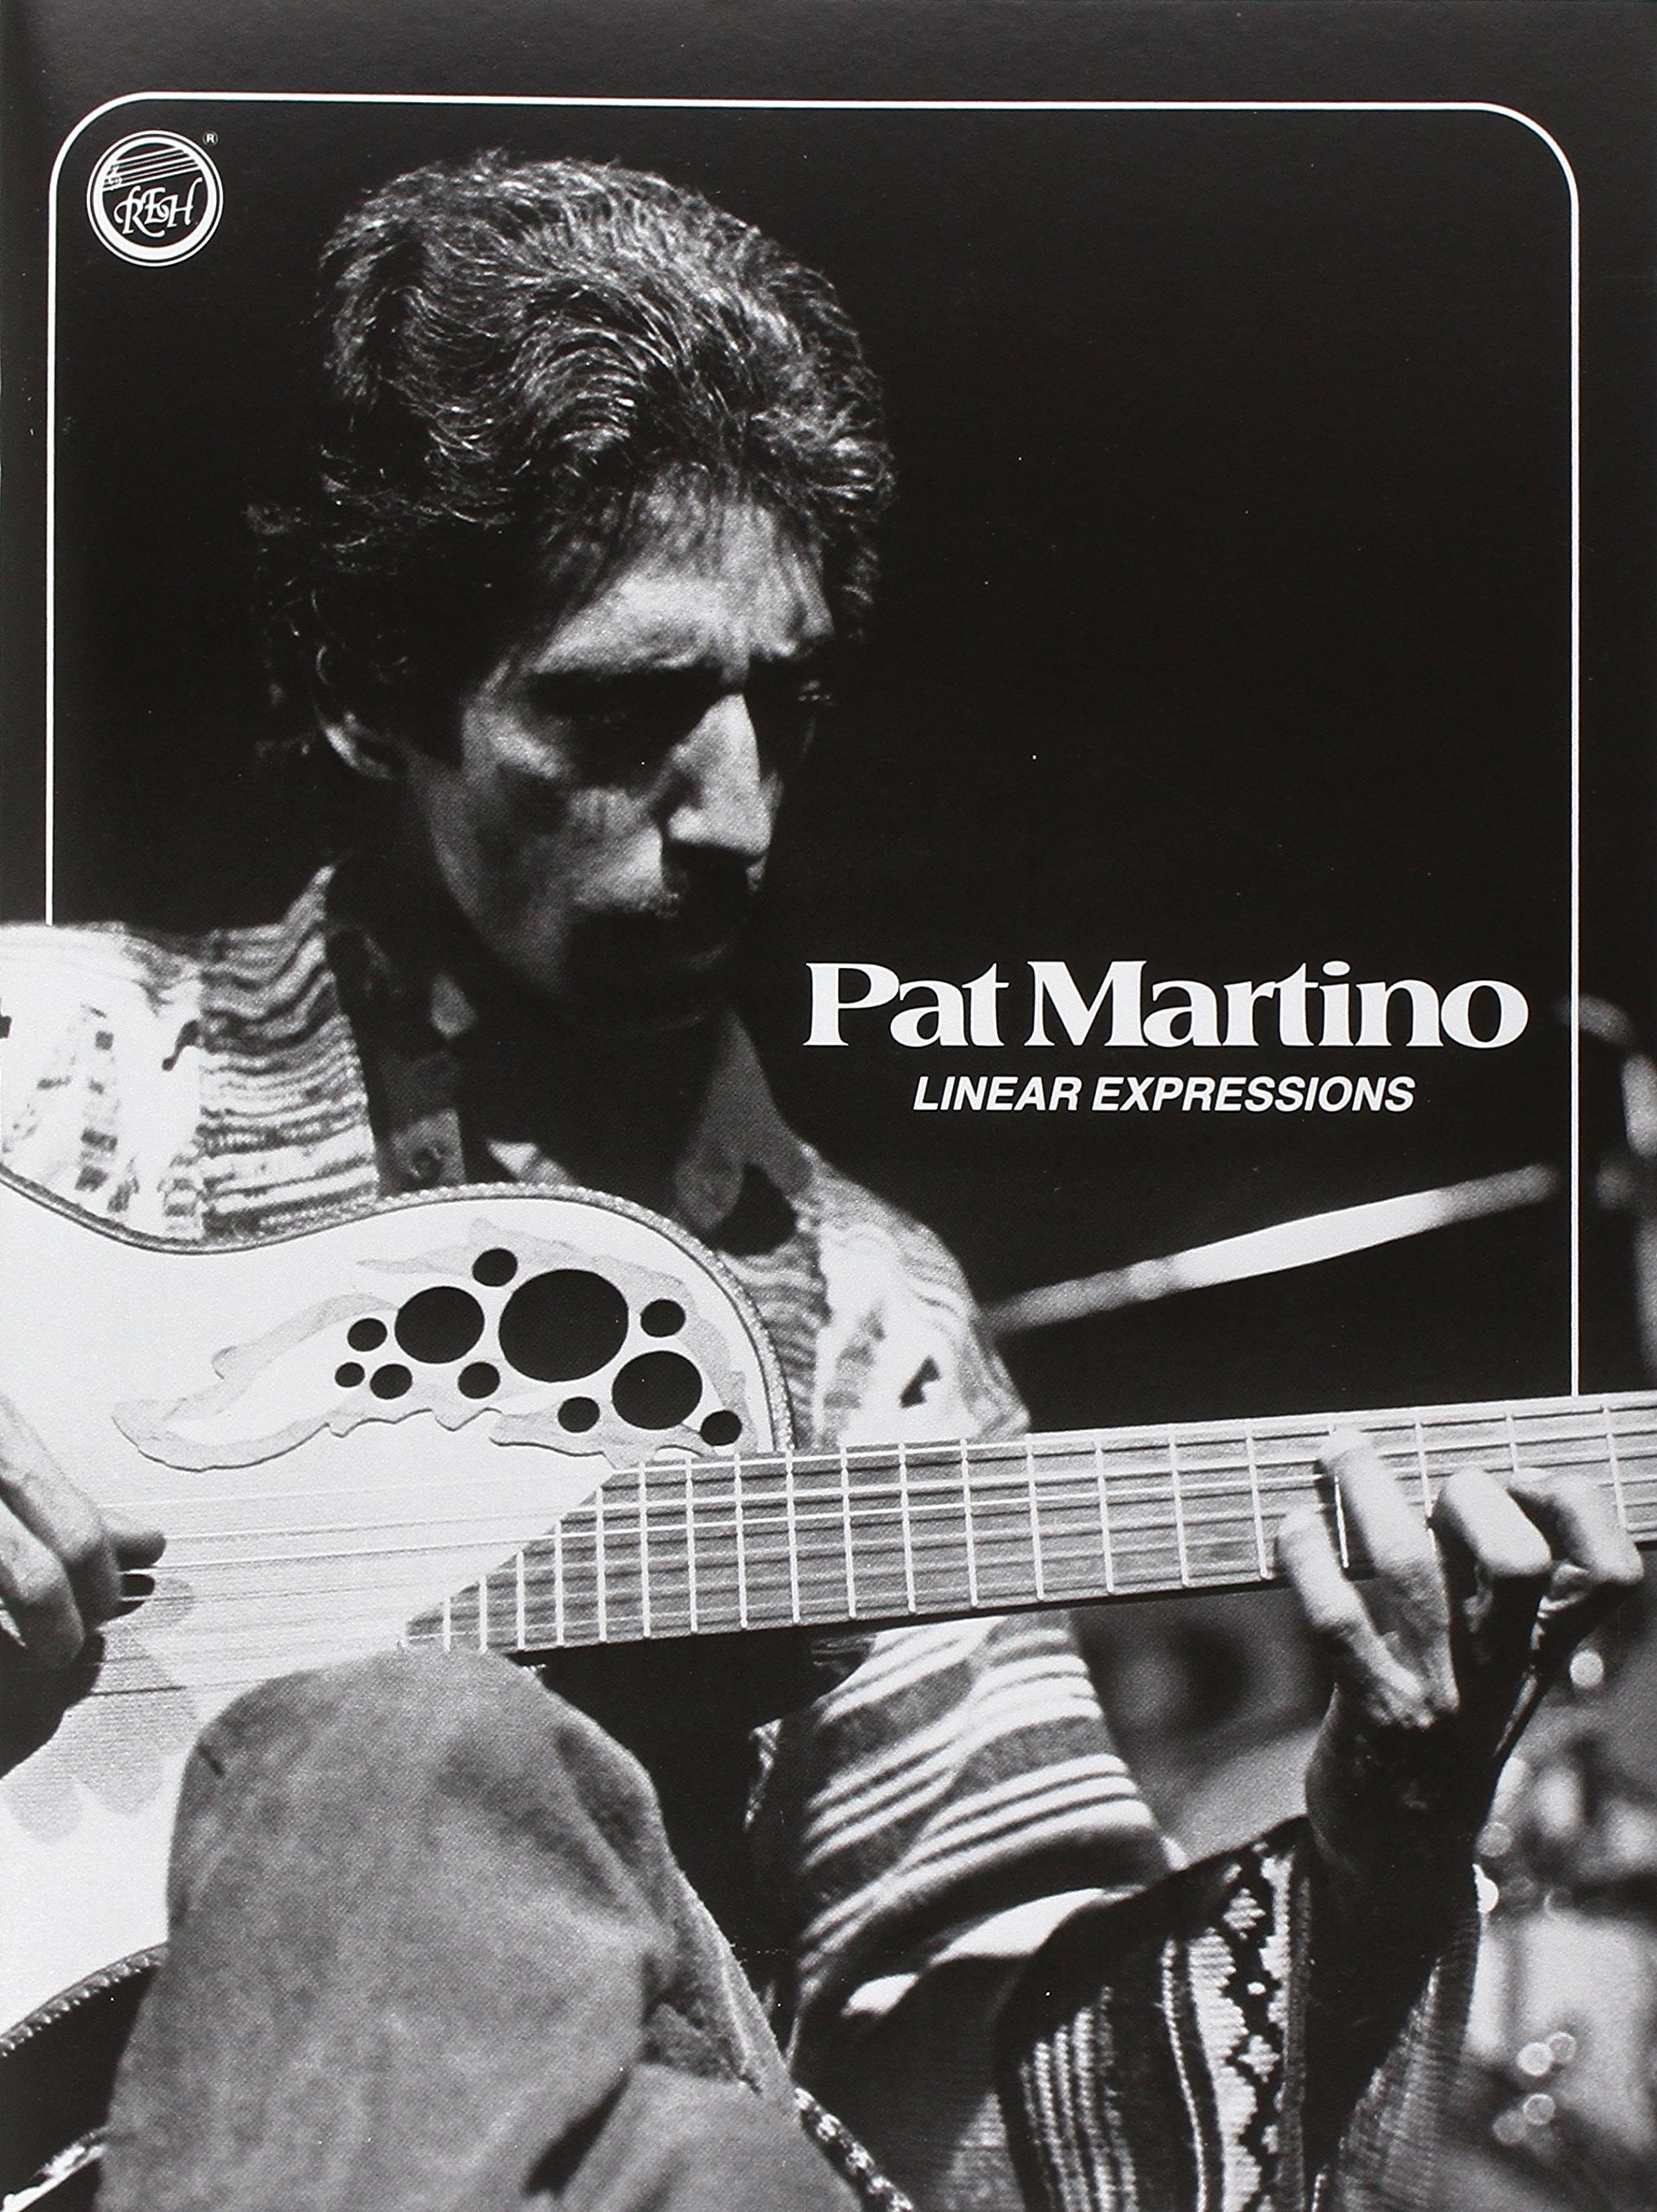 pat martino autobiography pdf to word